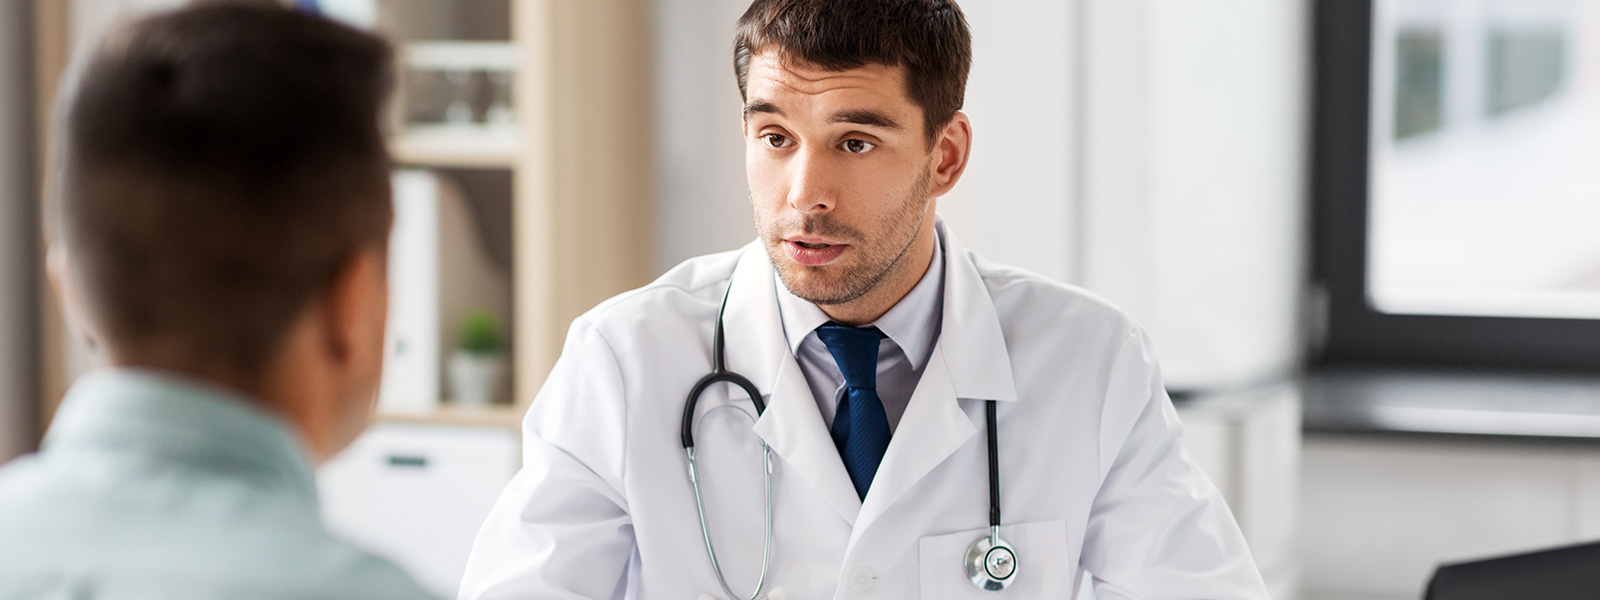 Defense lawyers for doctors